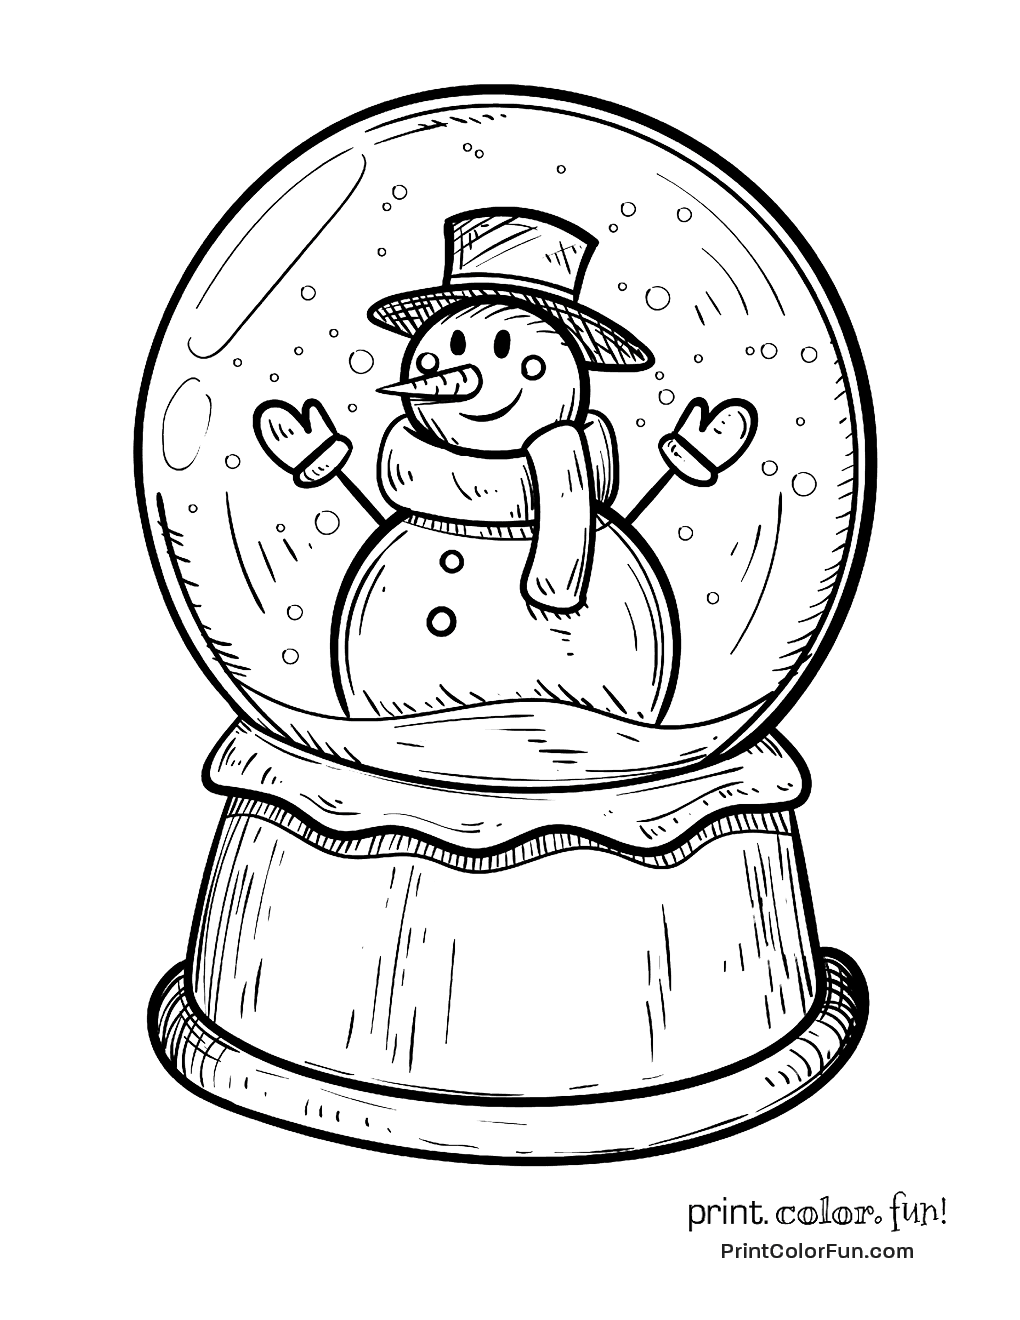 Winter snow globe with snowman coloring page - Print ...